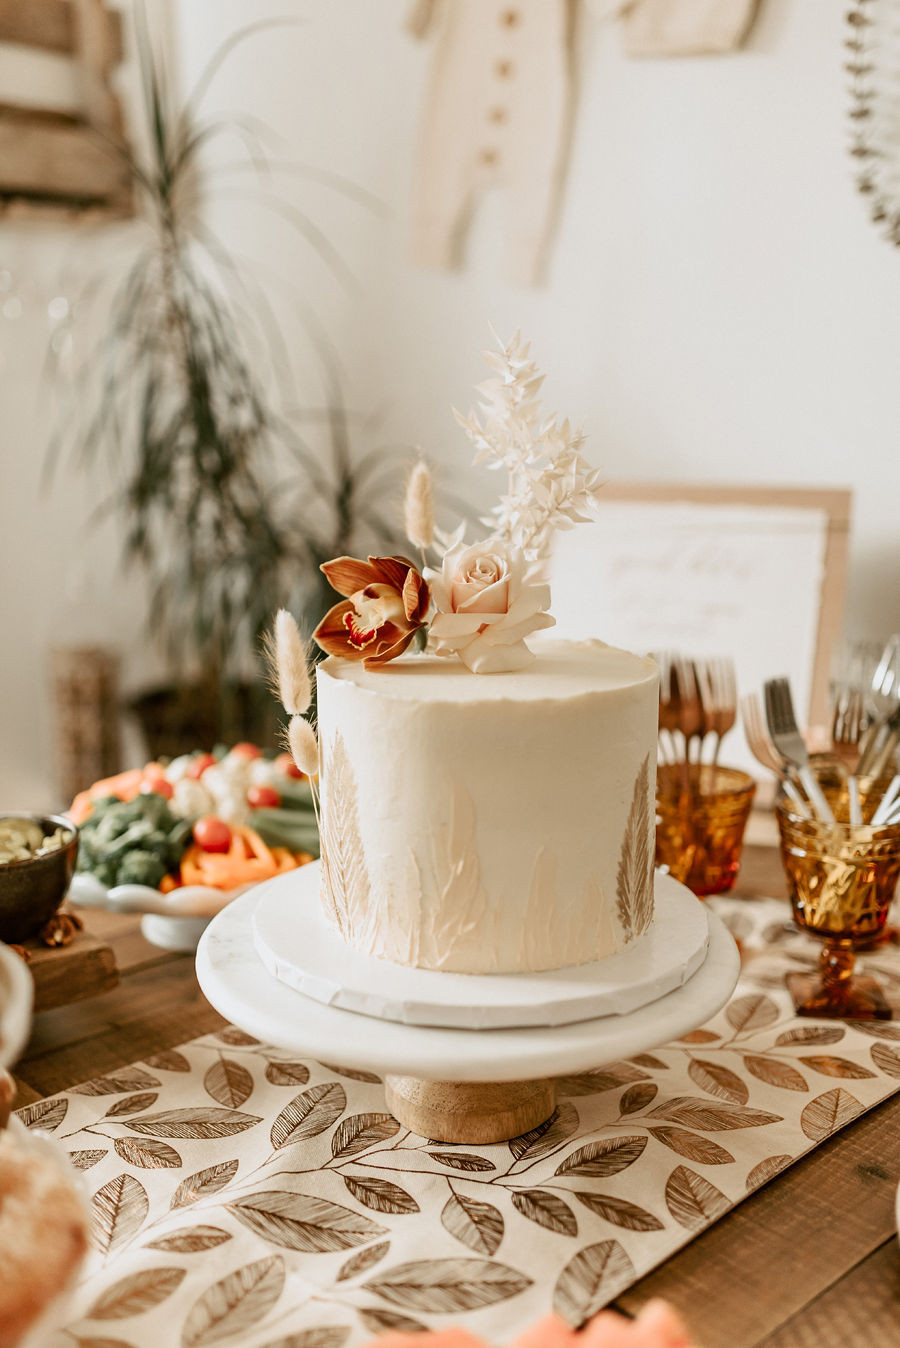 A white cake decorated at a boho romantic inspired baby shower is decorated with flowers, grasses and bunny tails.